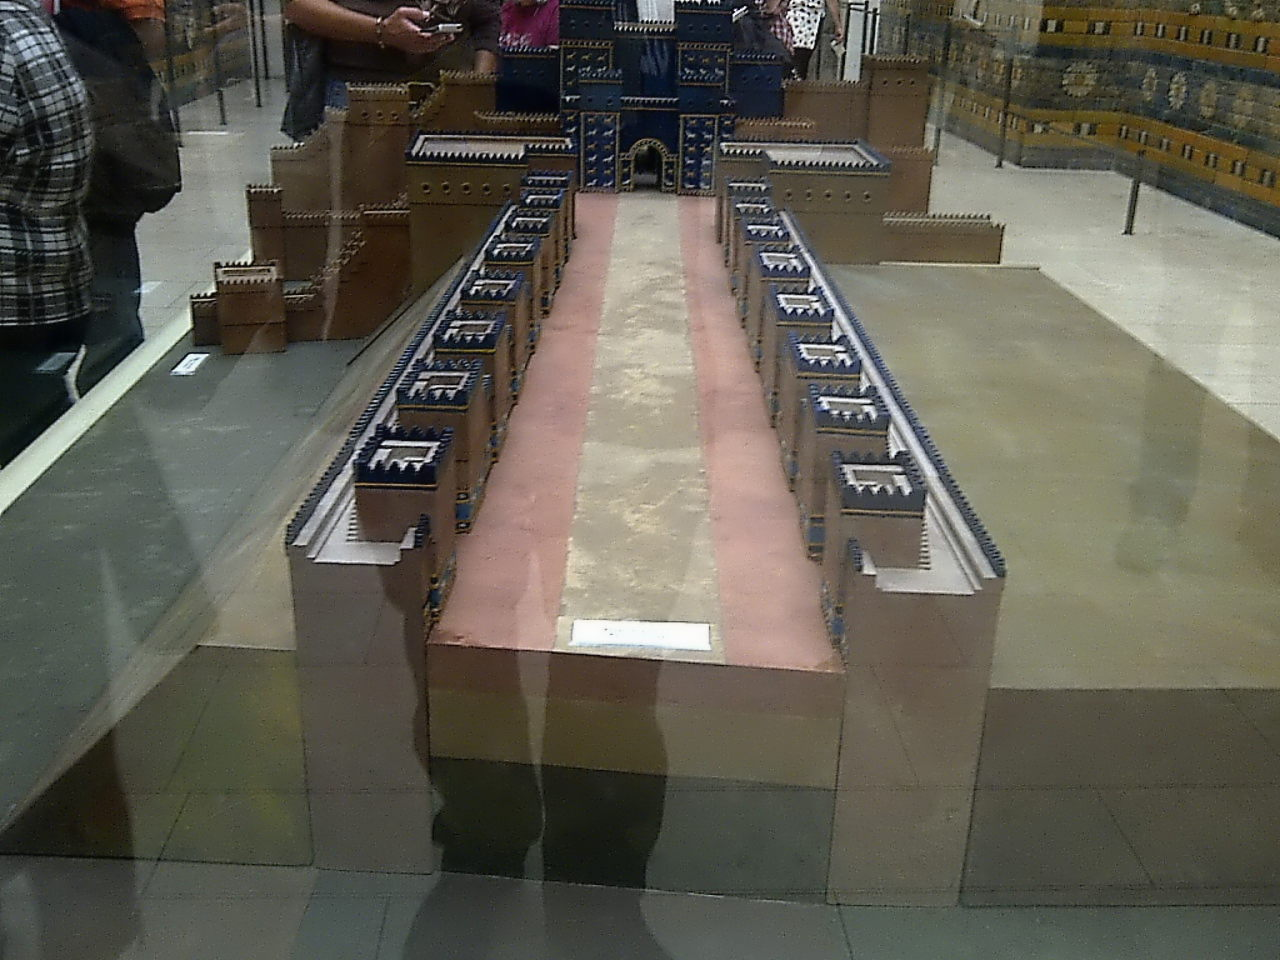 Ishtar Gate, procession street model